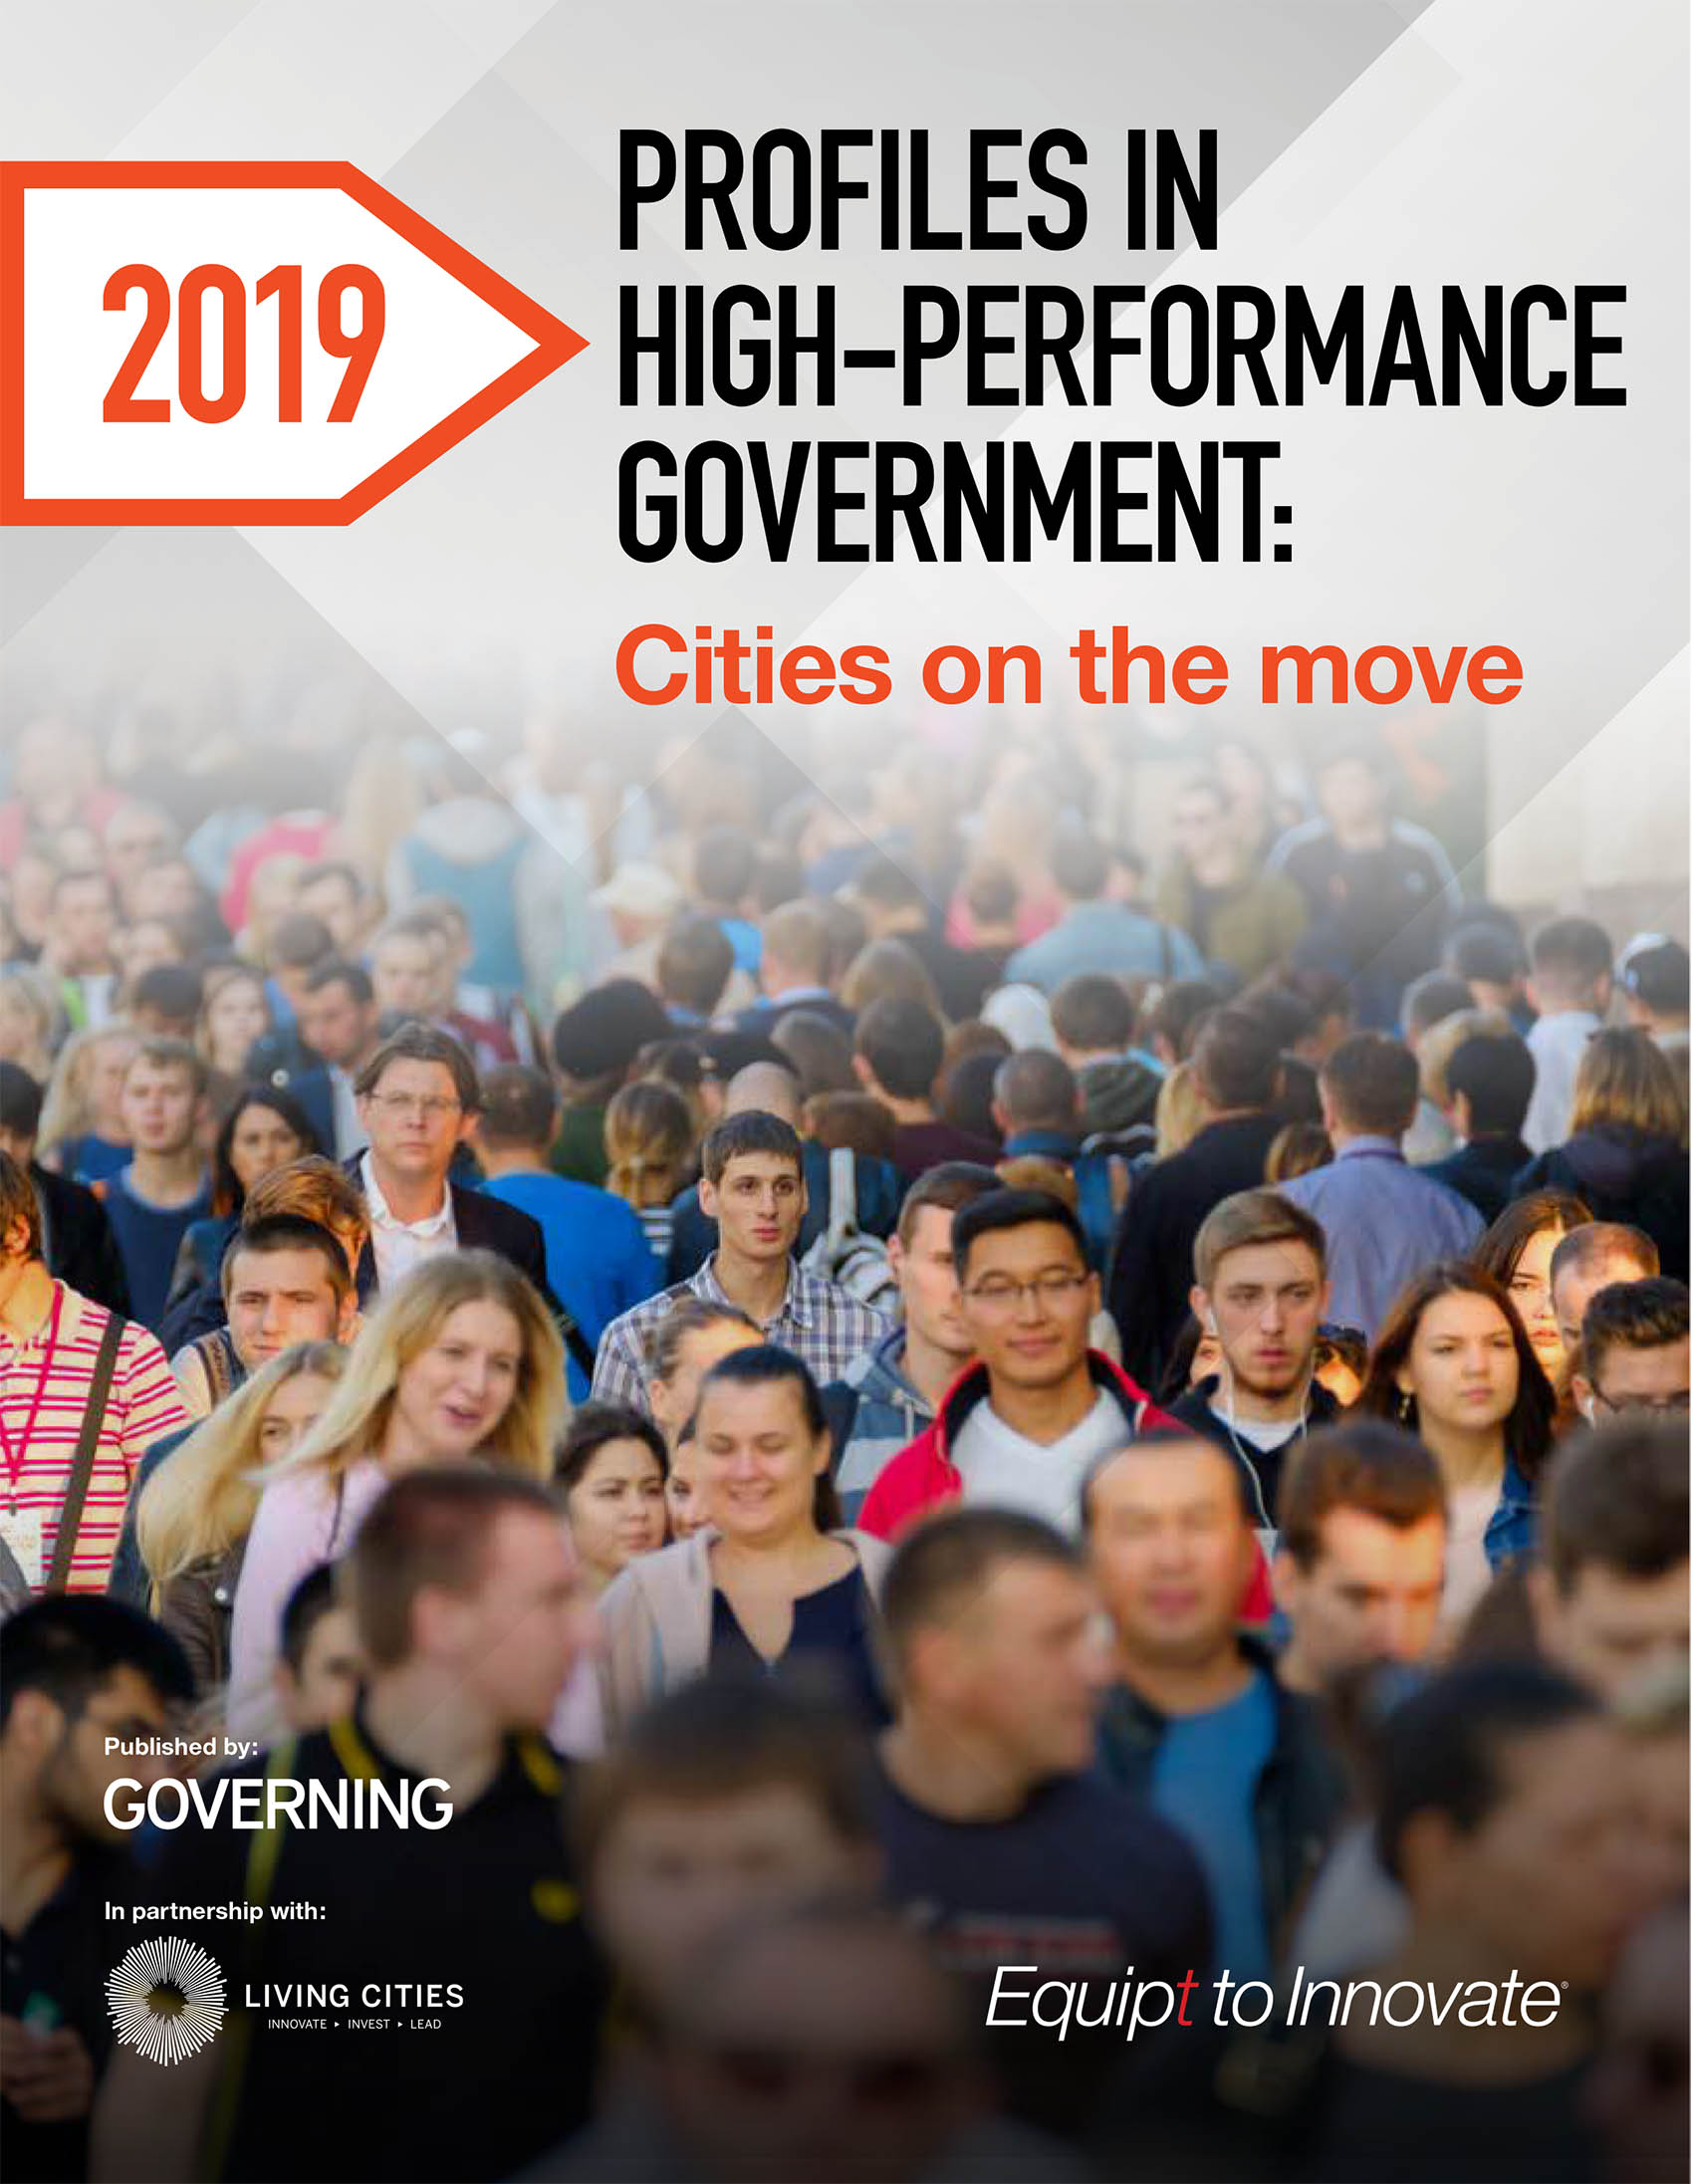 2019 Profiles in High-Performance Government: Cities on the Move